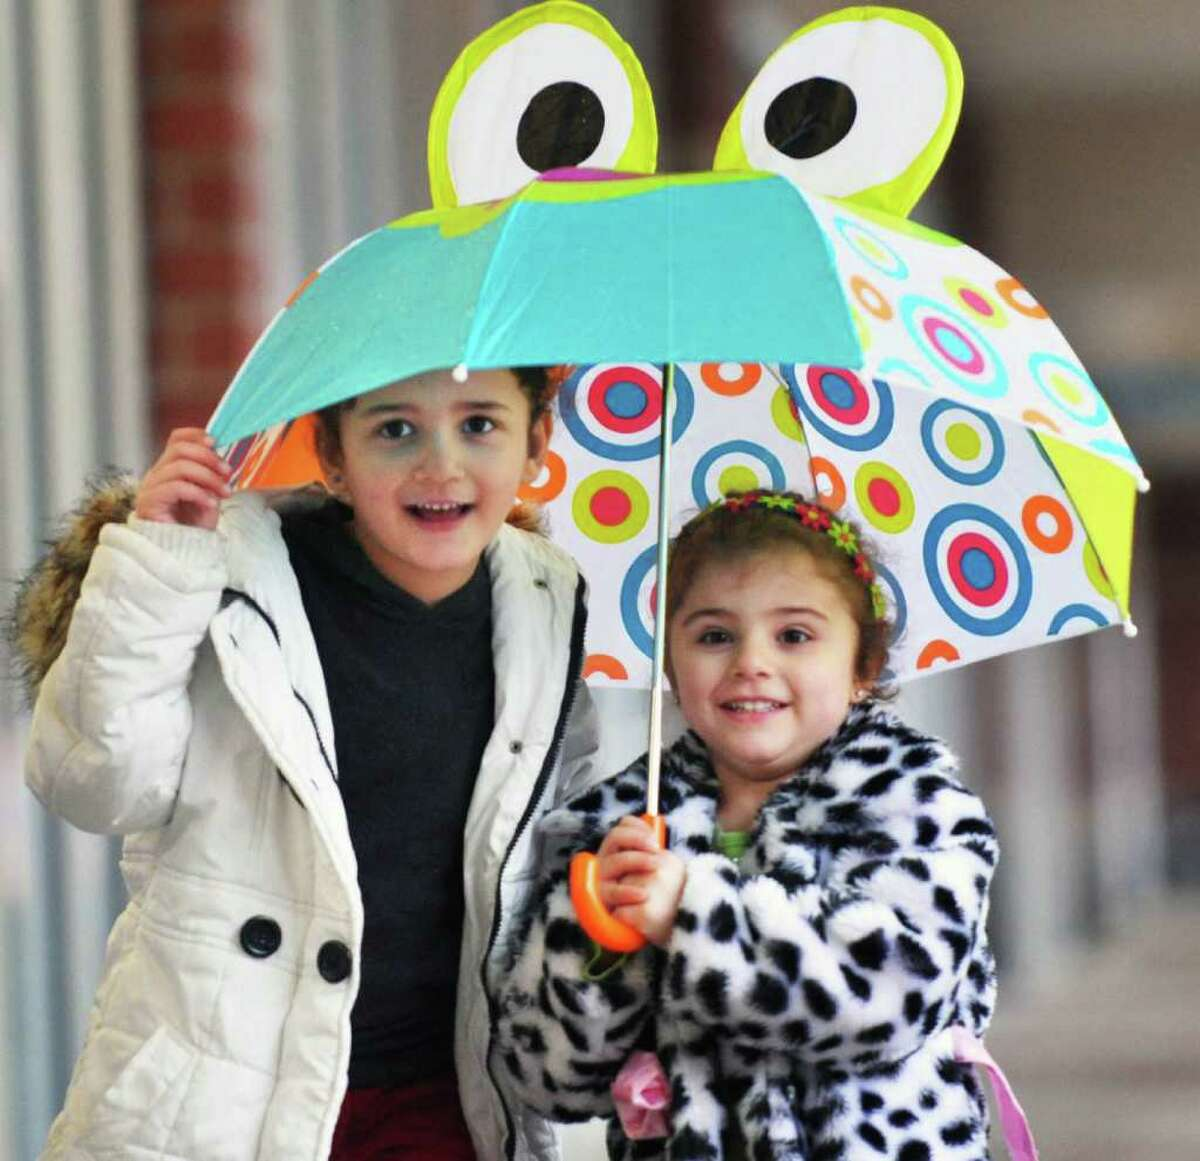 Riwa, 5, and Rhea Frangich, 3, of Latham huddle under an umbrella during a shopping trip with their mother at Latham Farms on Tuesday morning, April 5, 2011. (John Carl D'Annibale / Times Union)